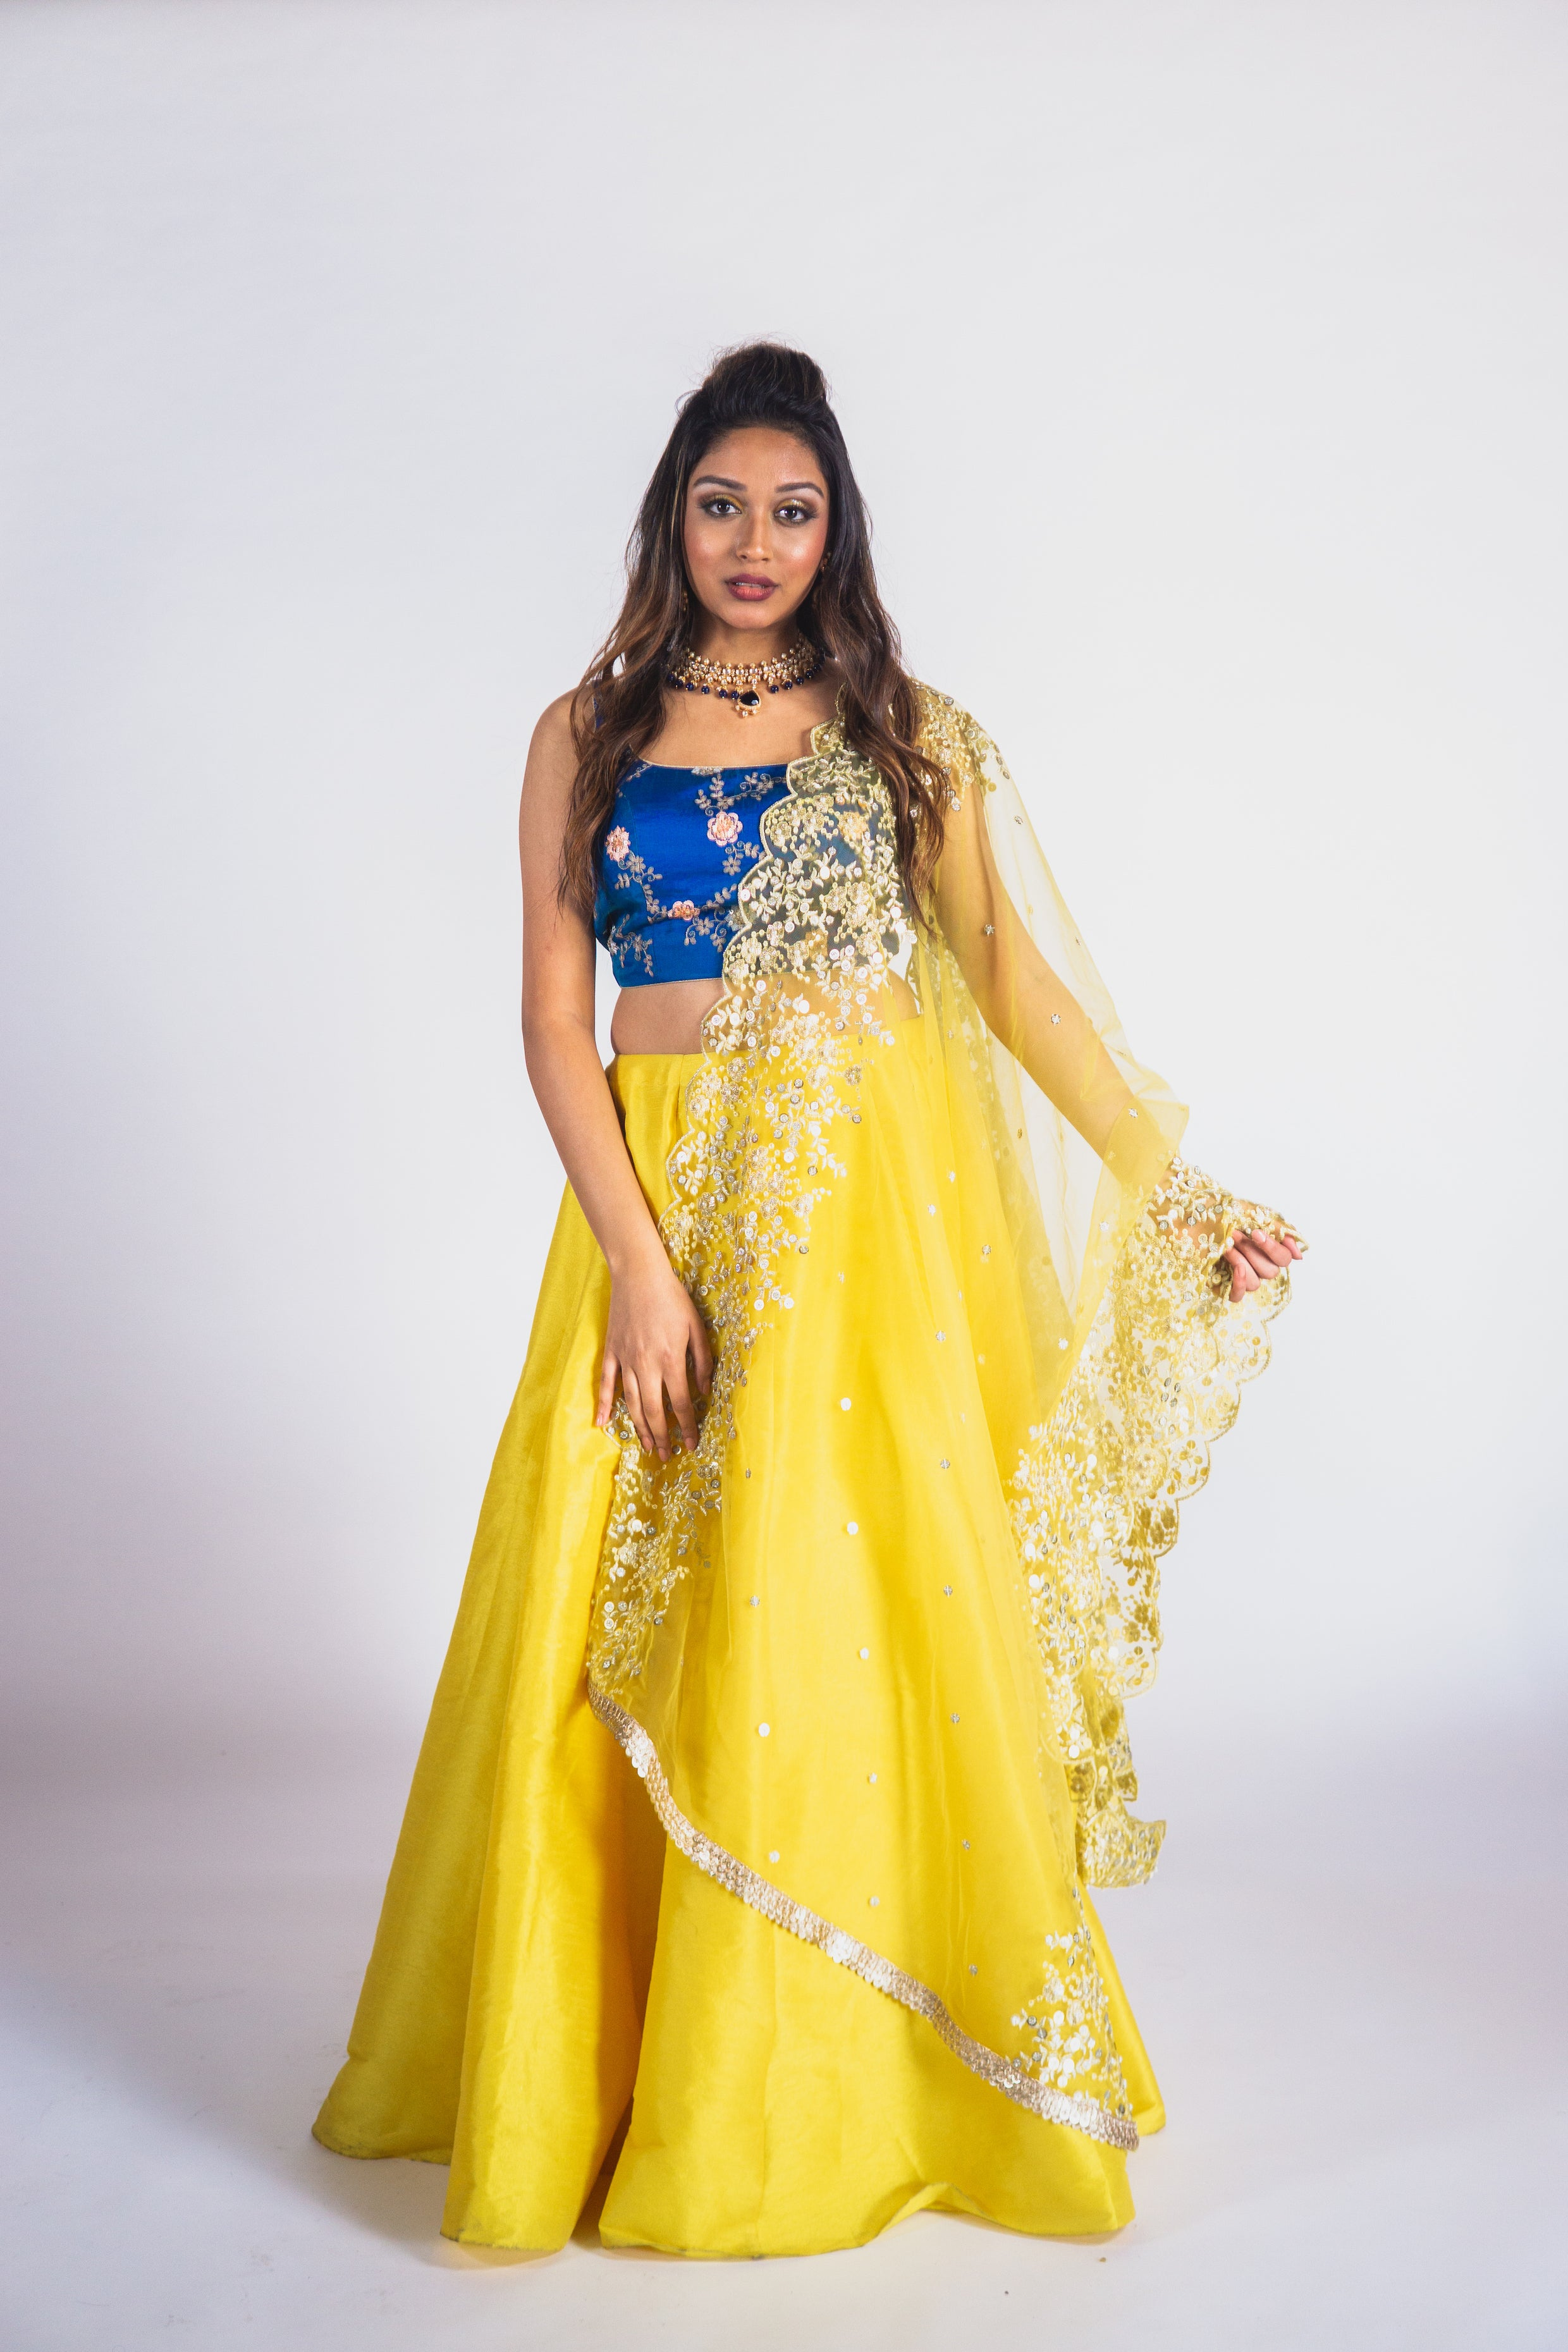 Electric blue resham and aari work blouse with a solid lemon yellow cotton silk lehenga & sheer 2 side scallop edge dupatta with dori & sequin work.